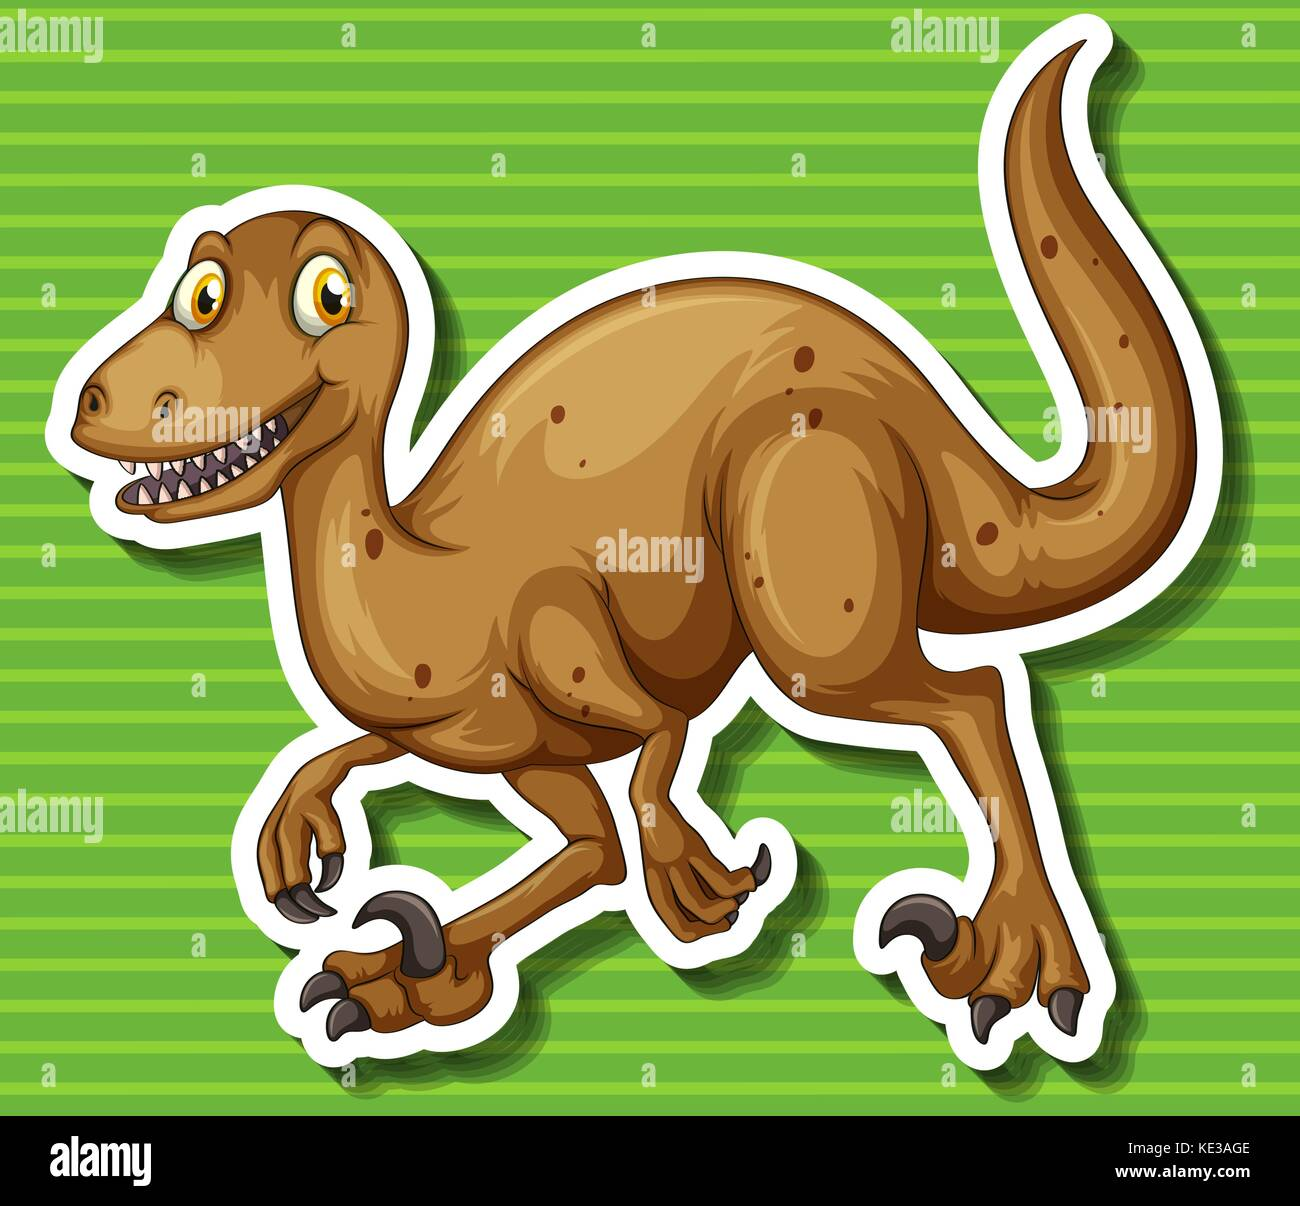 Brown dinosaur with sharp claws illustration Stock Vector